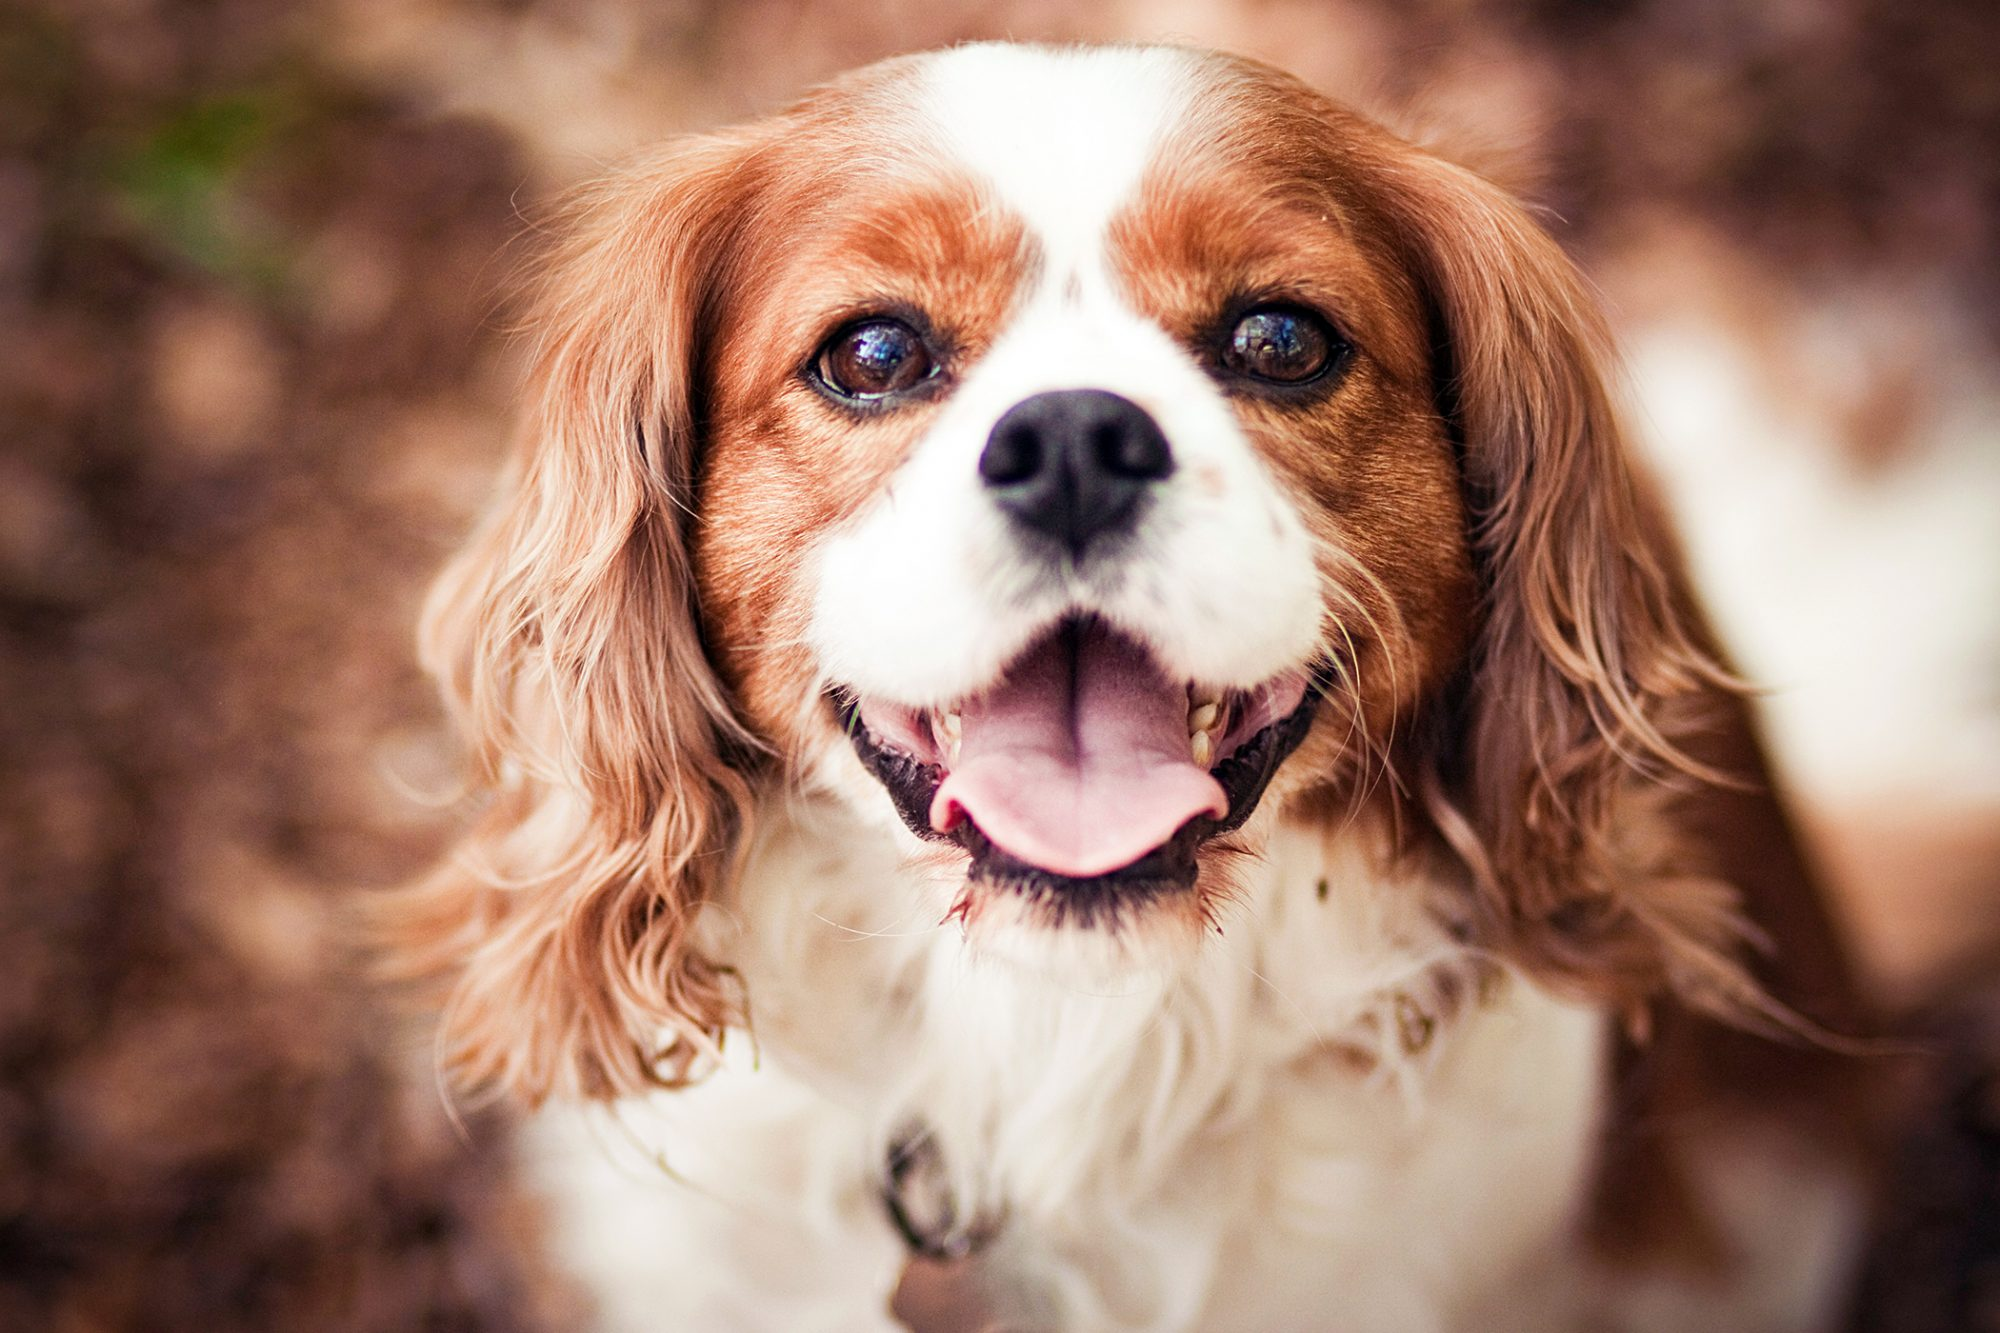 close up of a king cavalier charles spaniel looking at the camera with her tongue out